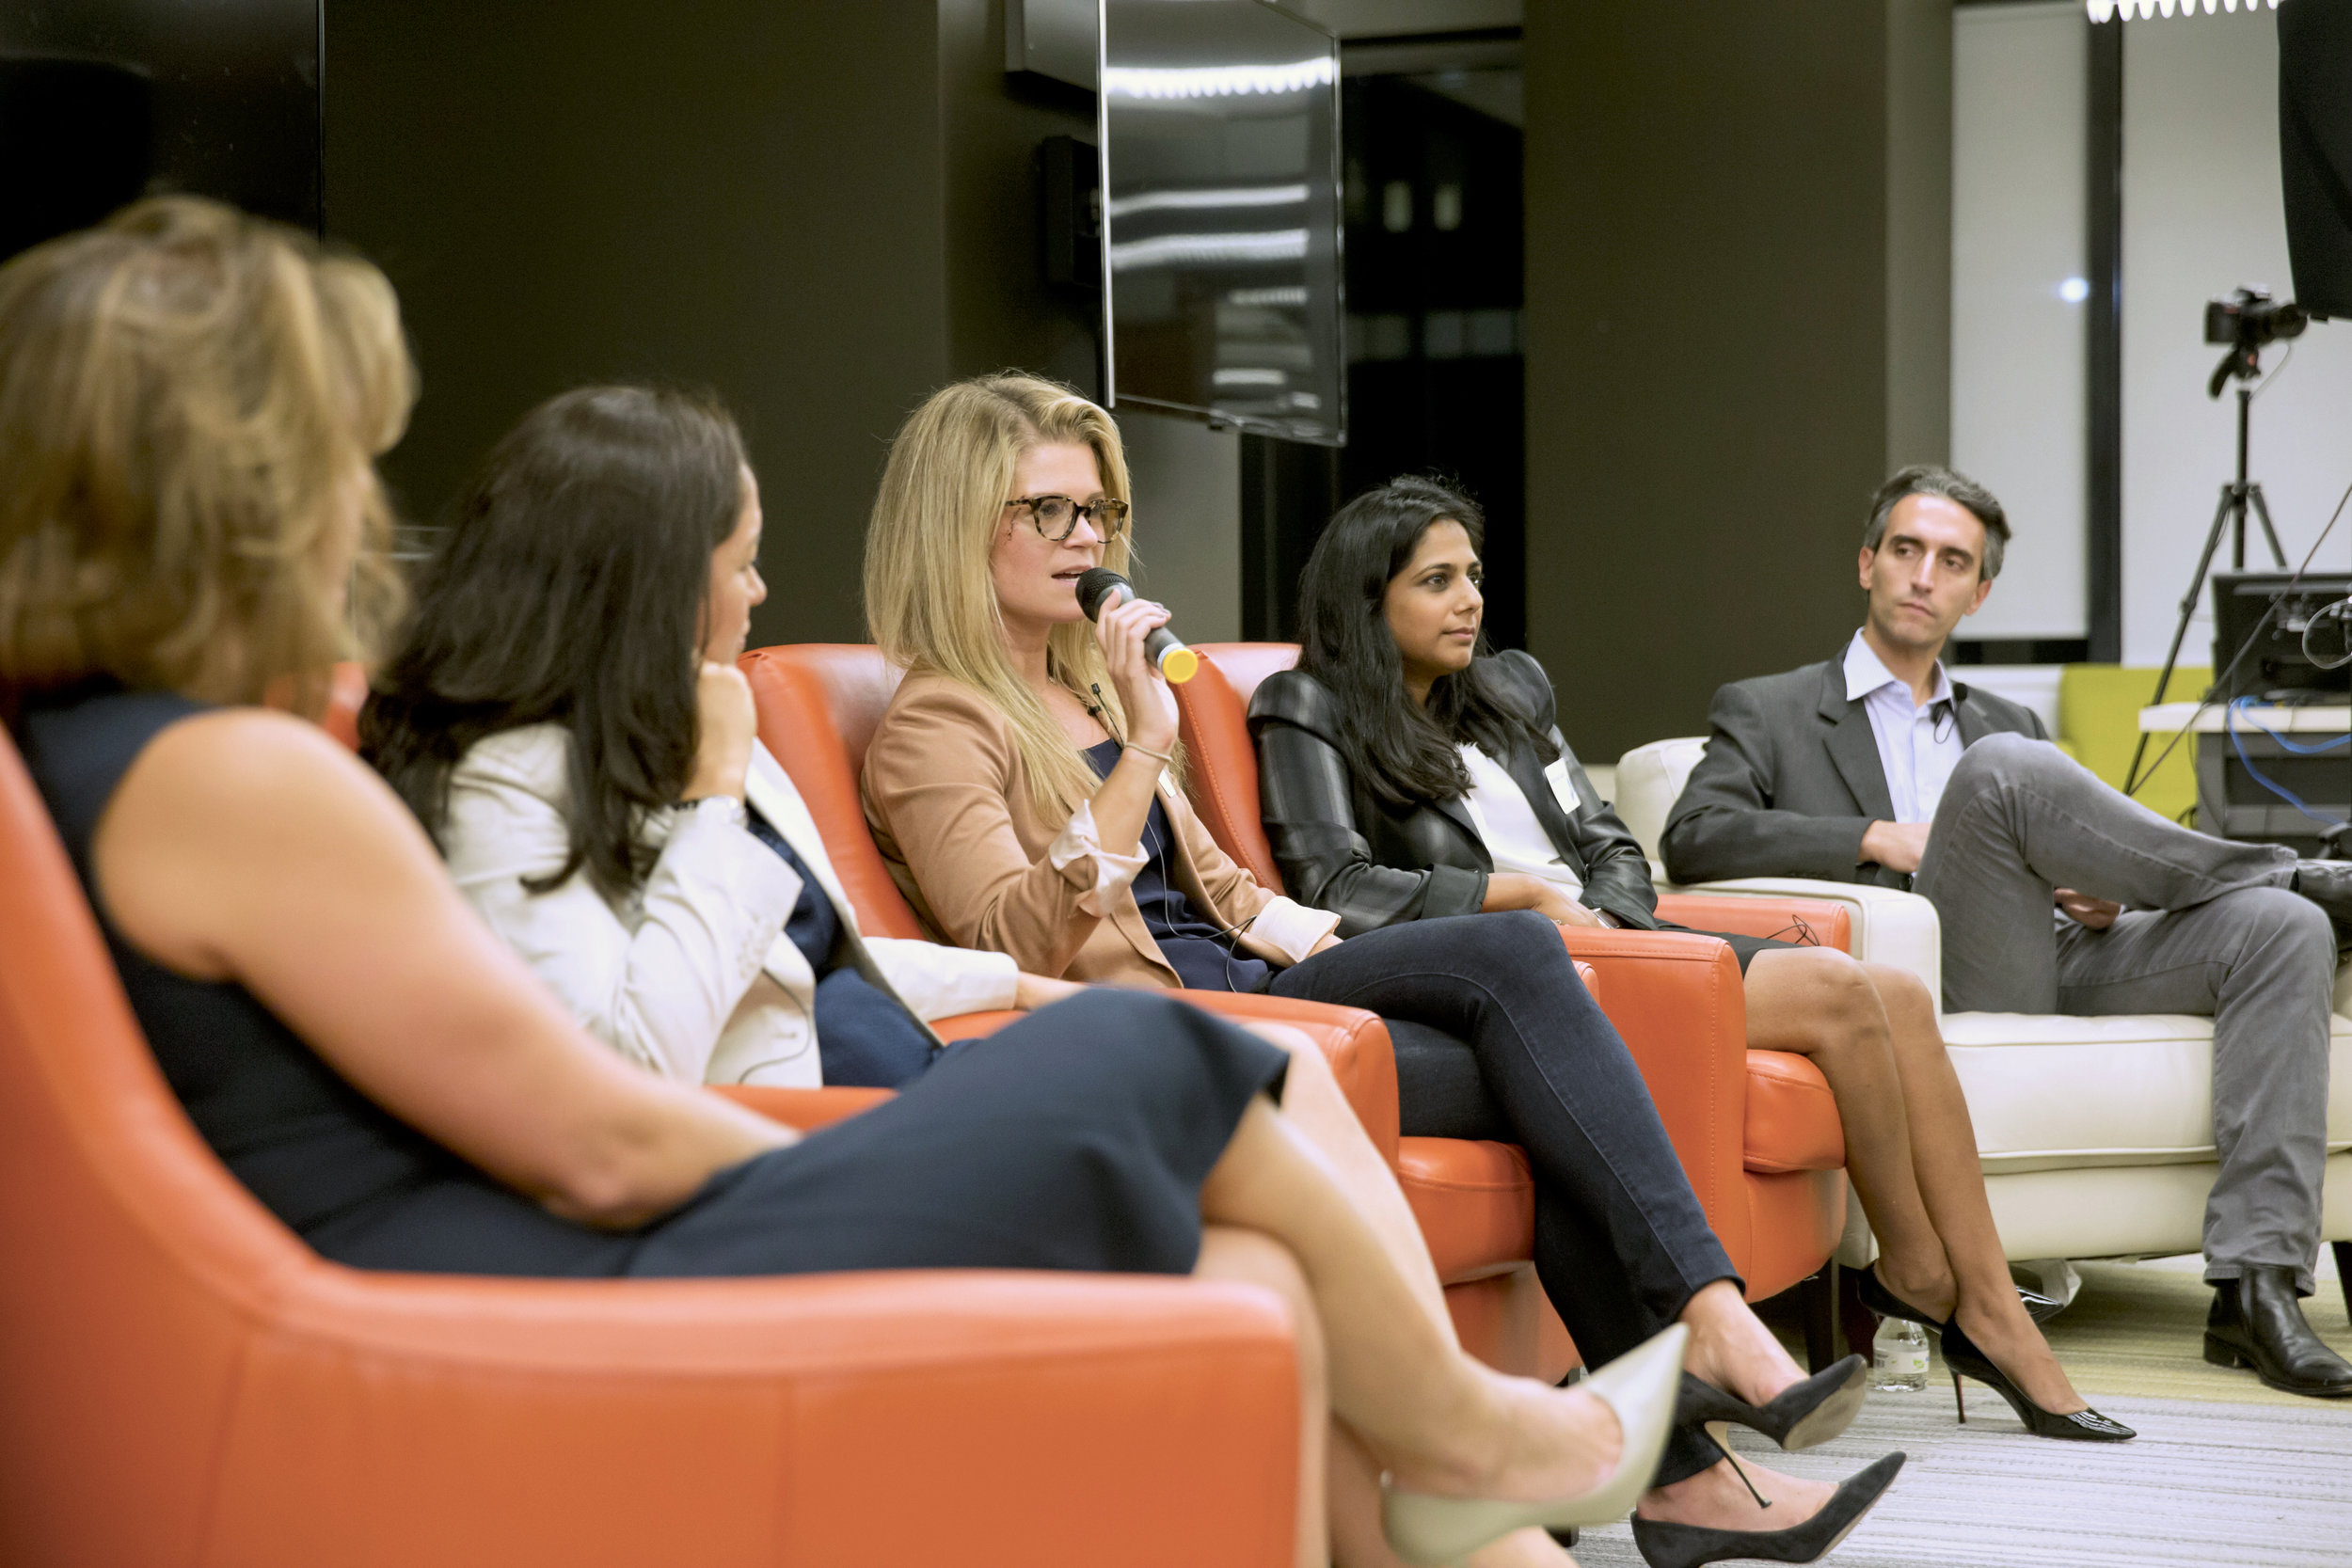 From left to right: Janet Balis, Catalina --, Holly McConnell, Saleena Goel, Jeremy Levine